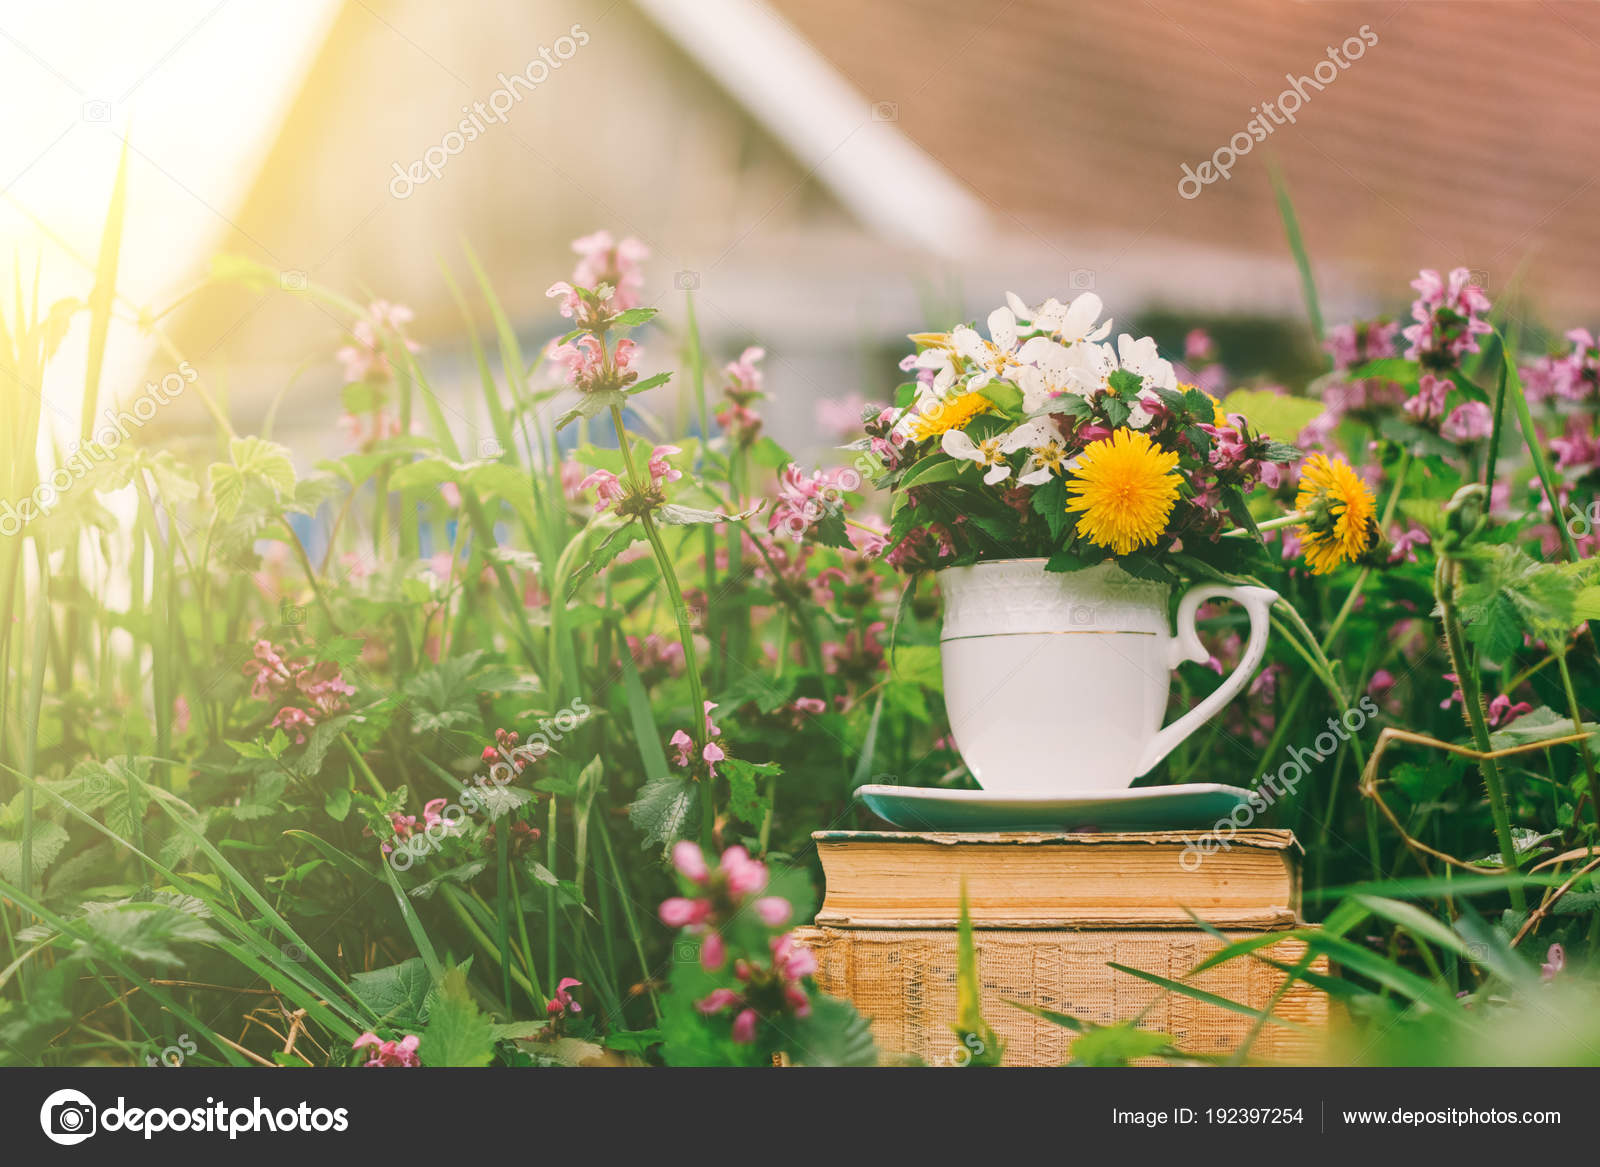 Grass and flowers background Artwork Rural Landscape Stack Old Books Glass Flowers Background Flowering Grass Stock Photo Depositphotos Rural Landscape Stack Old Books Glass Flowers Background Flowering